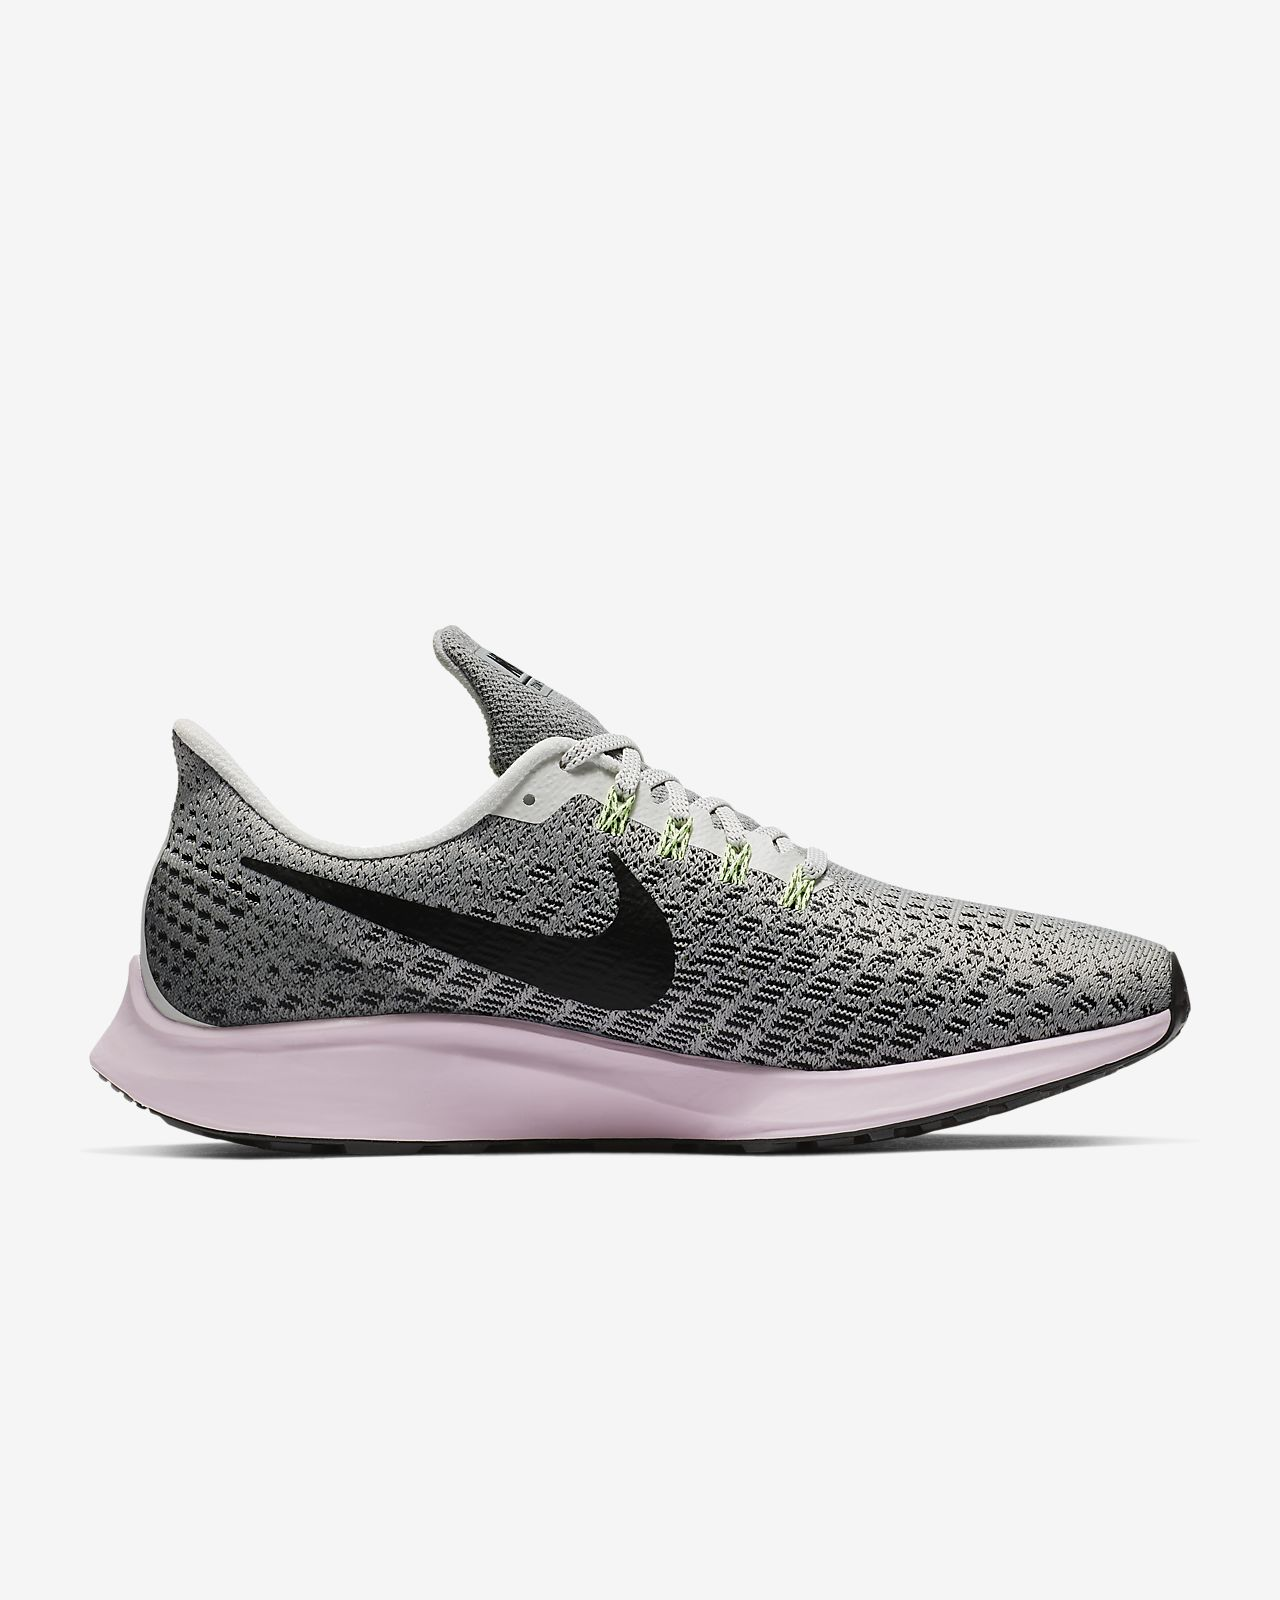 new product aadd5 af0ca ... Chaussure de running Nike Air Zoom Pegasus 35 pour Femme